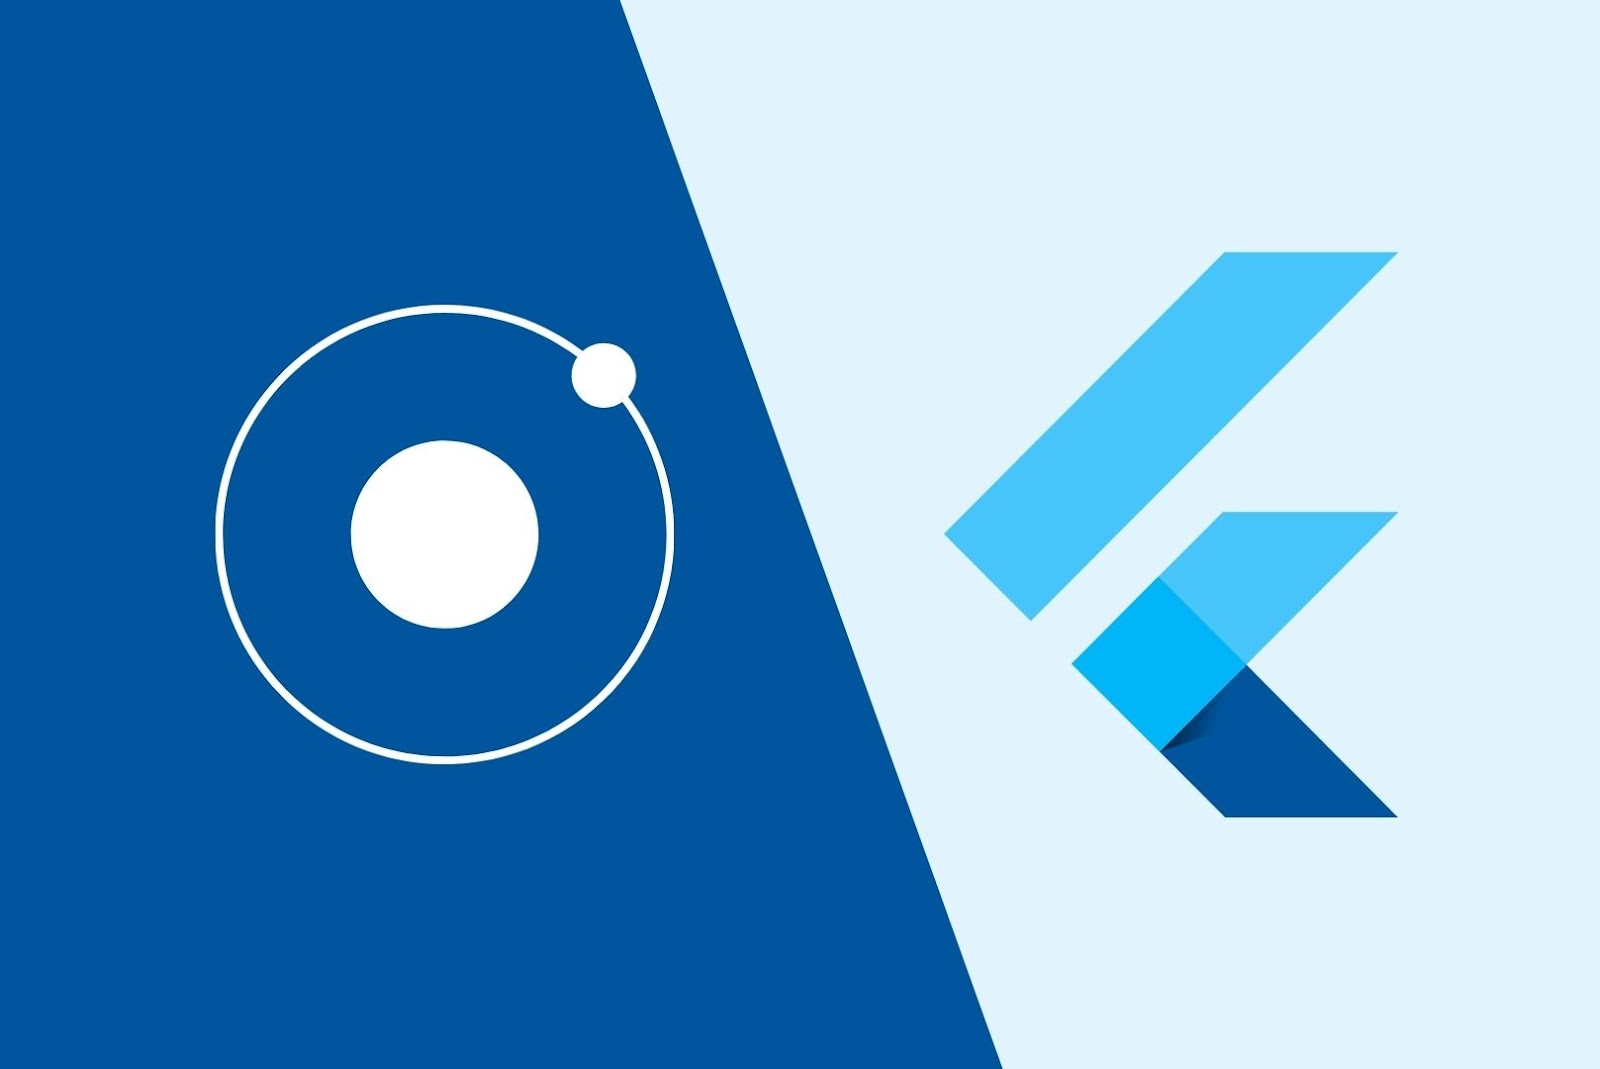 Common features of ionic and flutter